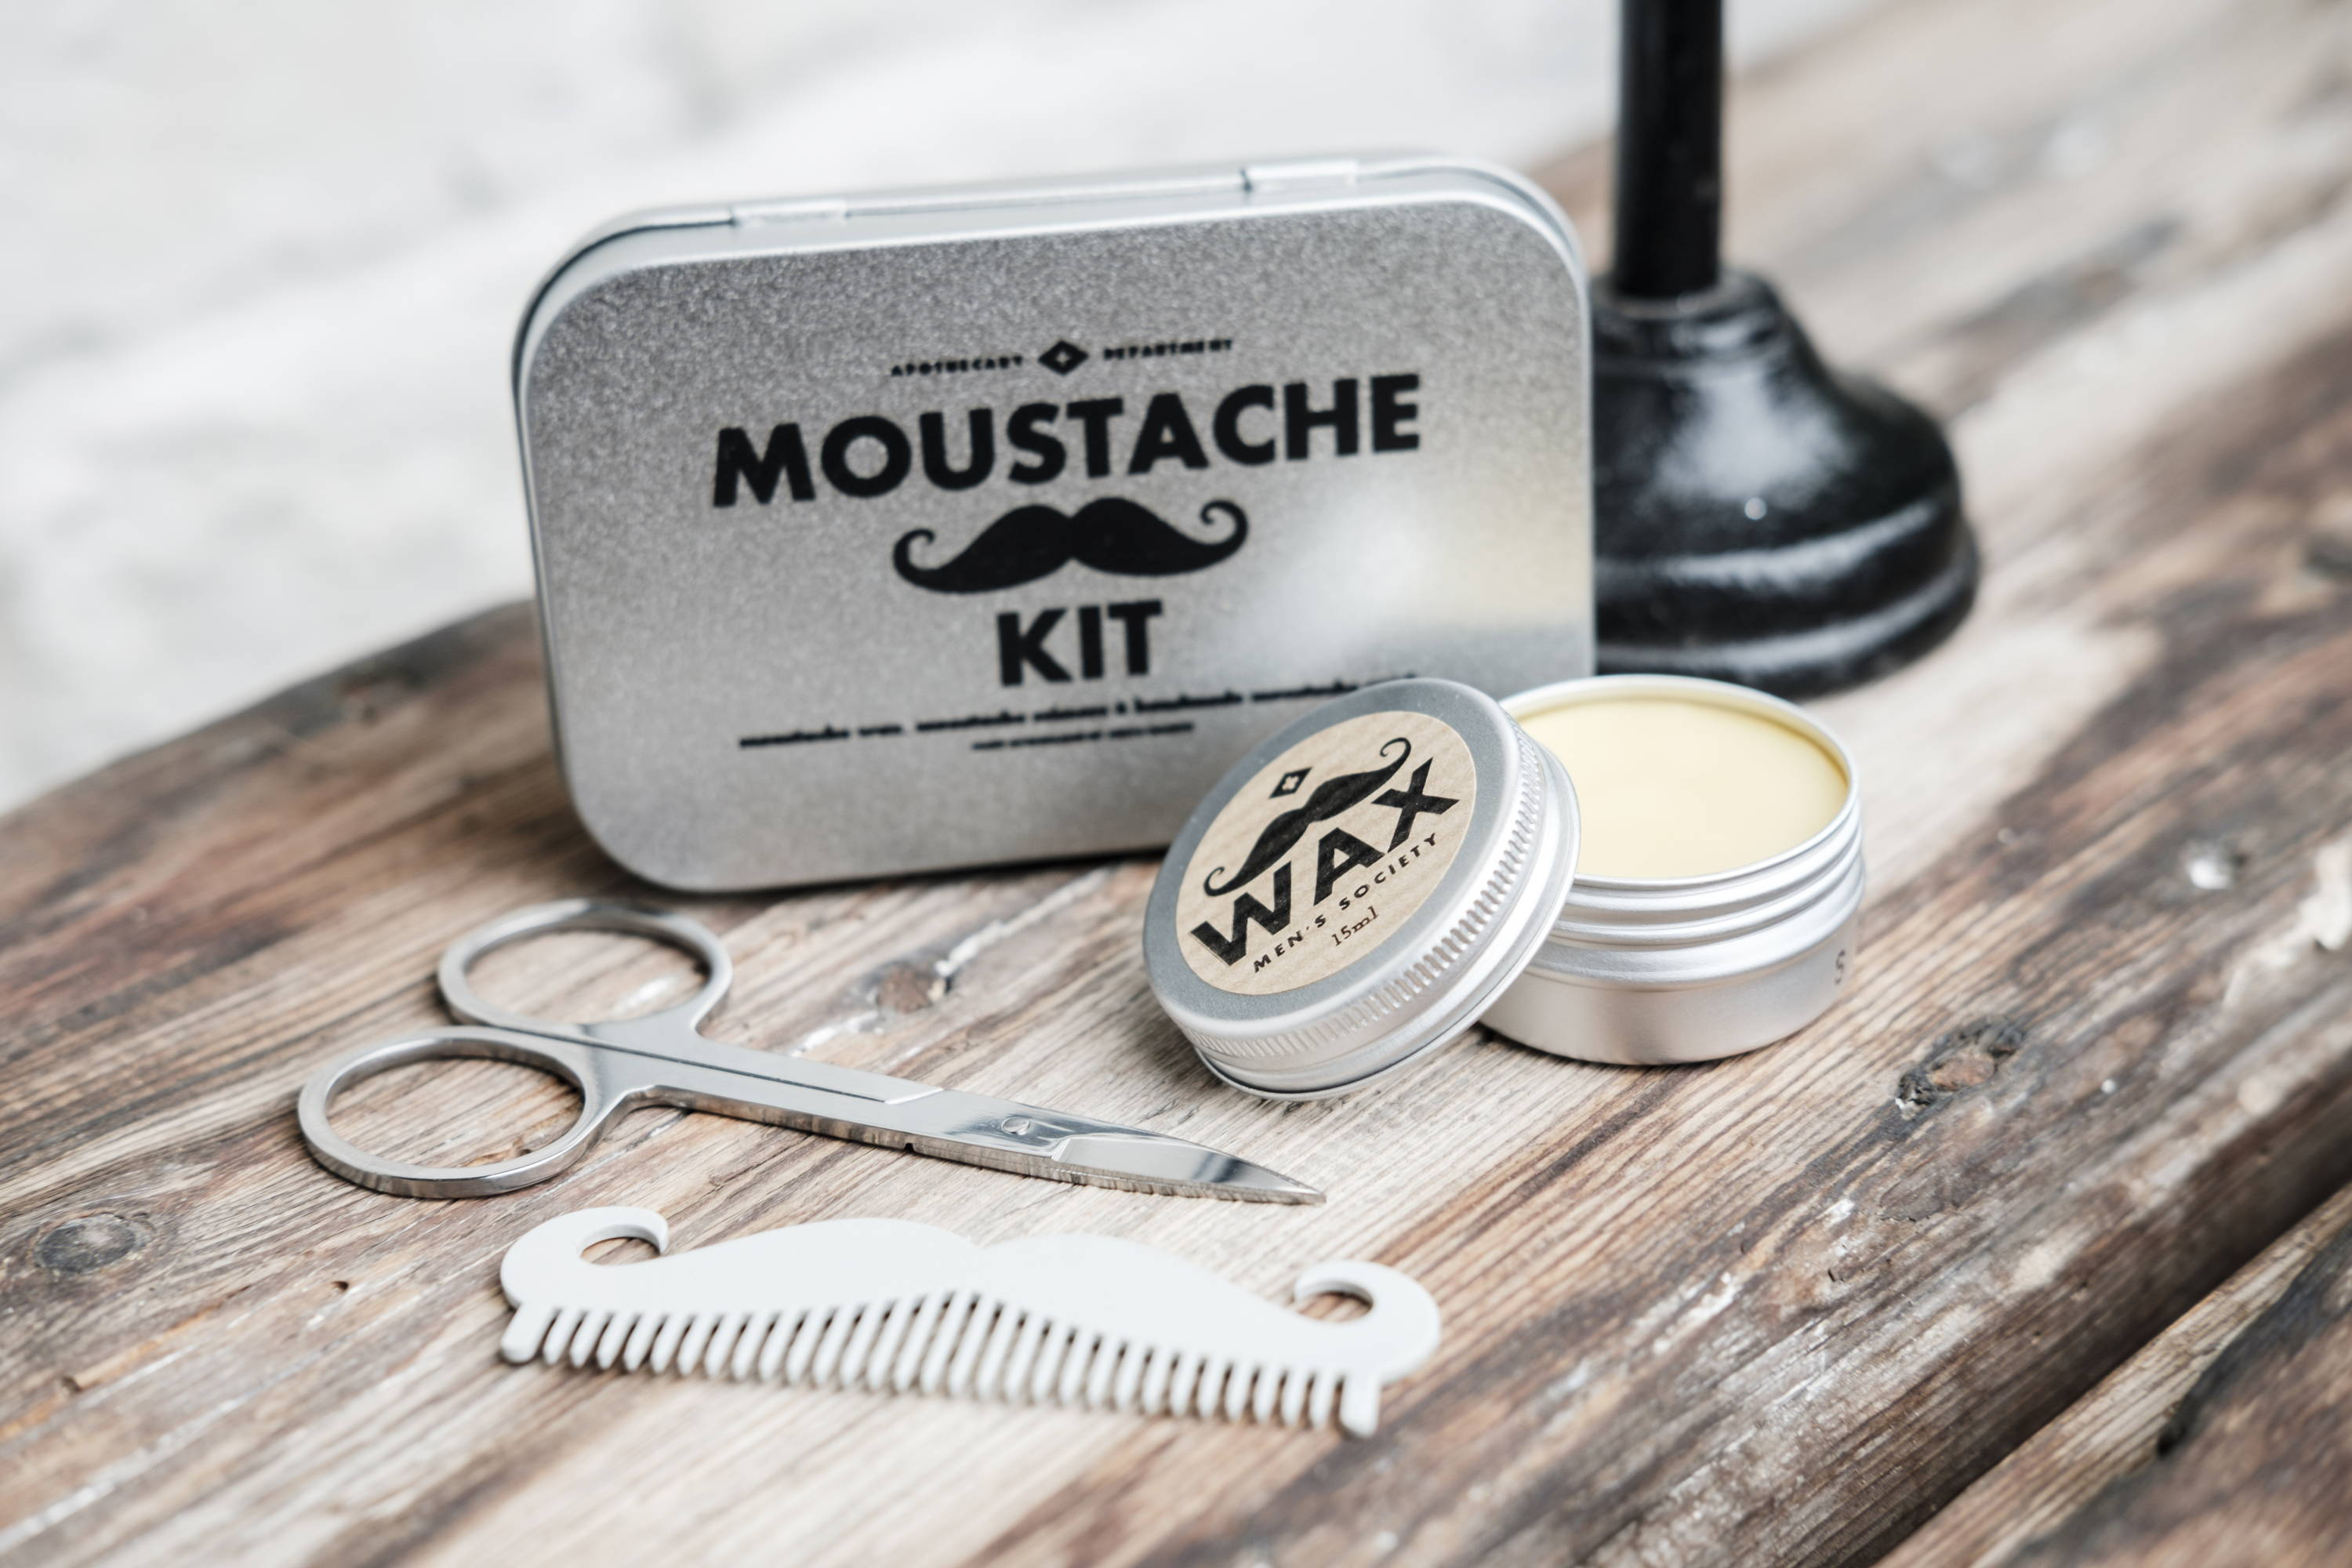 Order your moustache comb as part of our all-in-one Moustache Grooming Kit